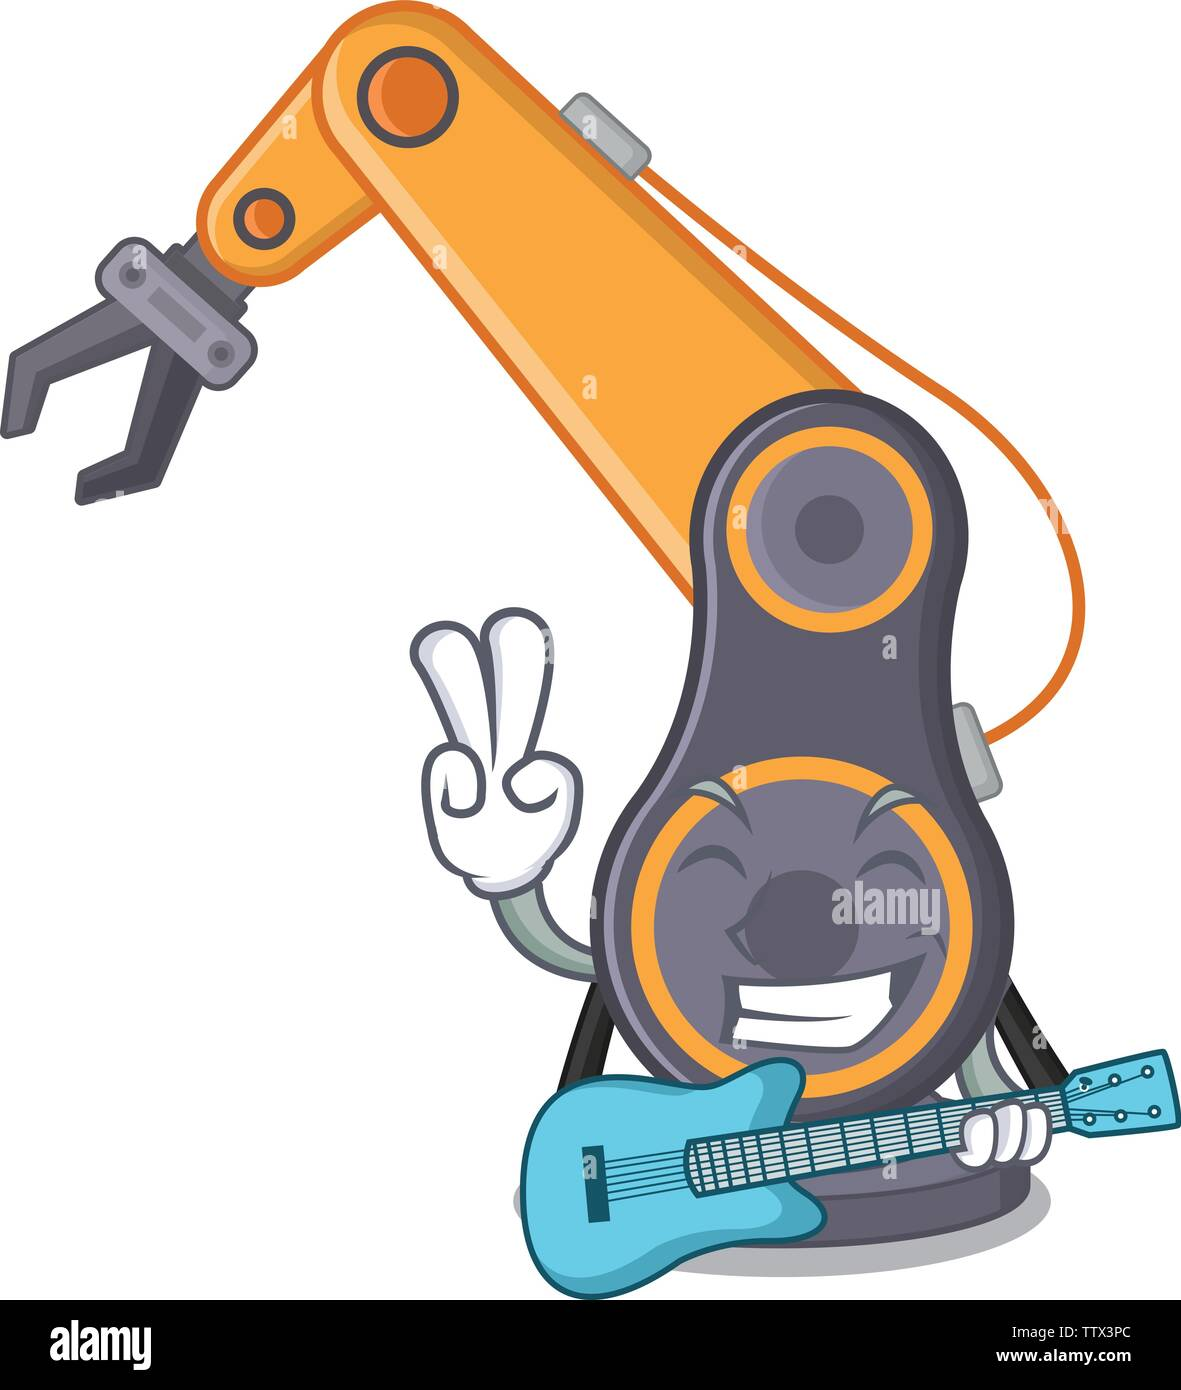 With guitar industrial robotic hand isolated with cartoon - Stock Image